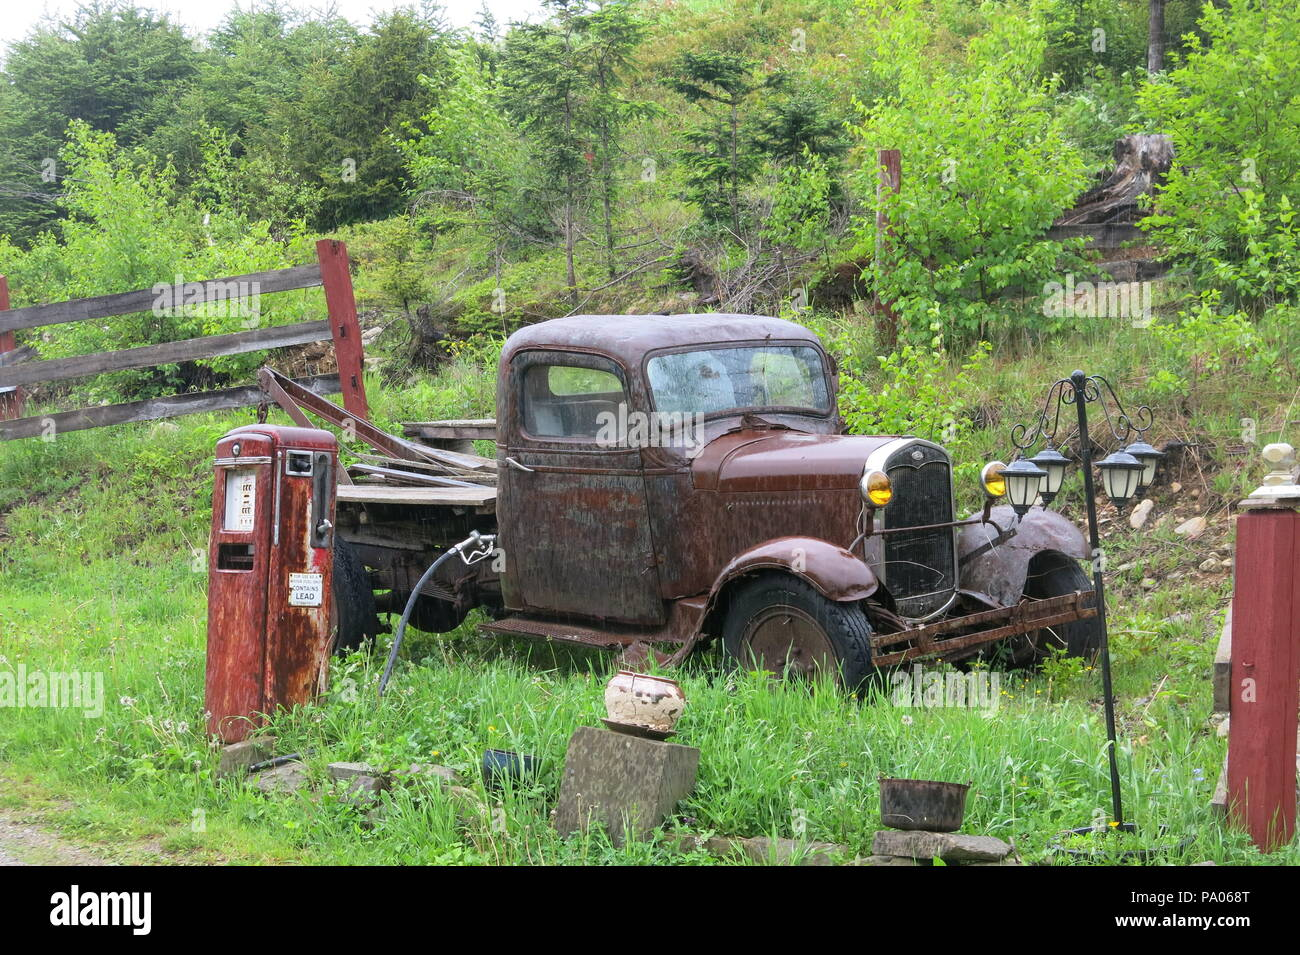 This ancient Ford tow-truck and old-fashioned petrol pump, abandoned in the countryside, make a vintage scene and memories of a bygone era. - Stock Image